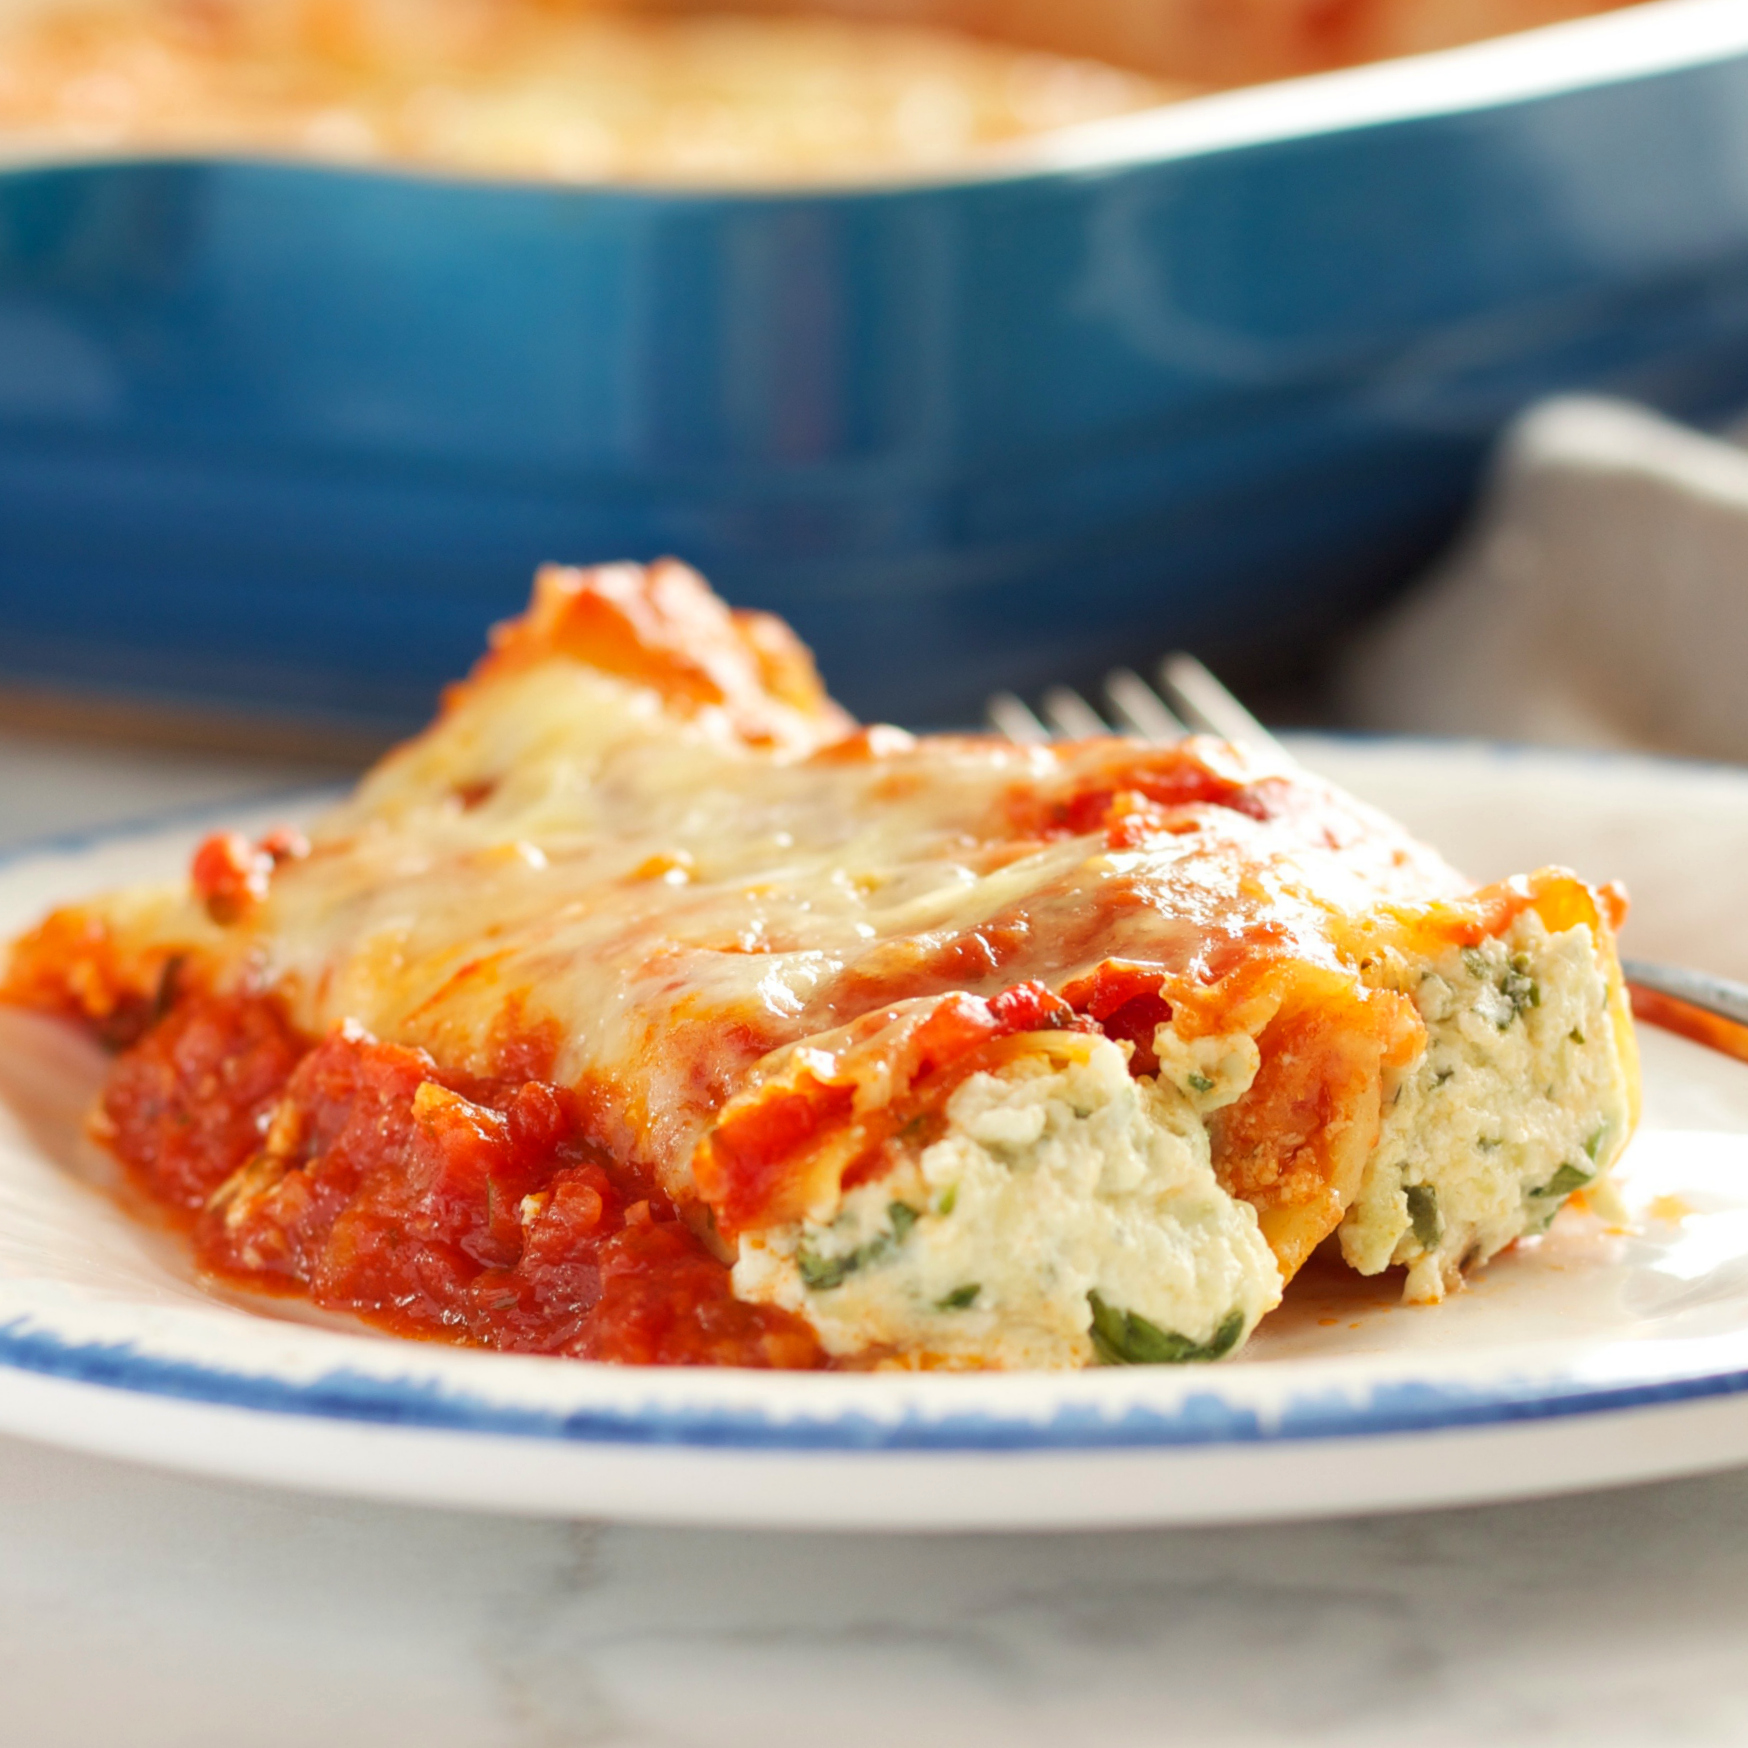 Baked Ricotta And Spinach Cannelloni (Manicotti Pasta